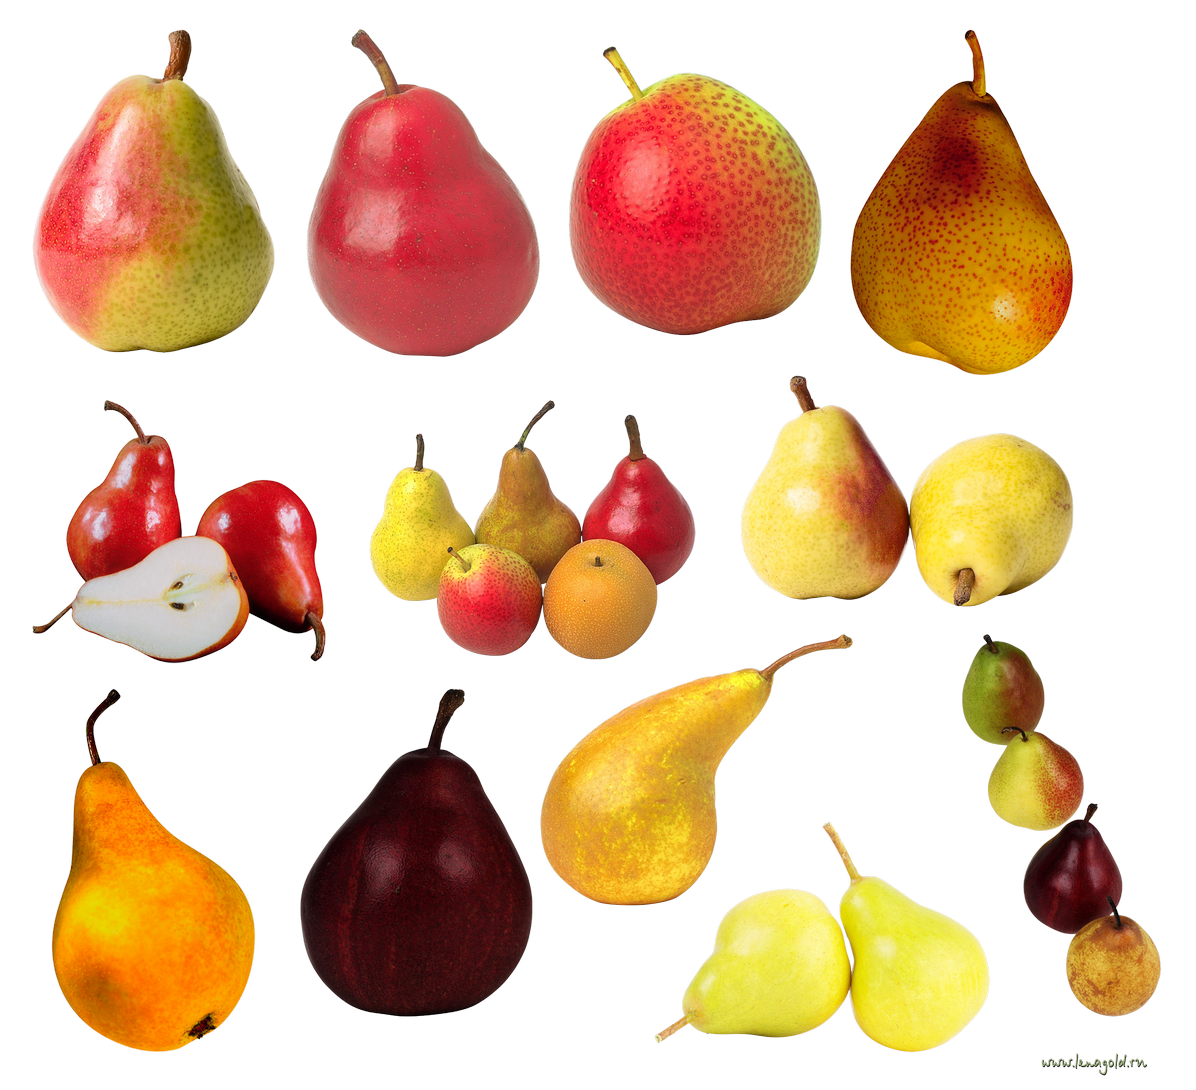 Pear PNG Image